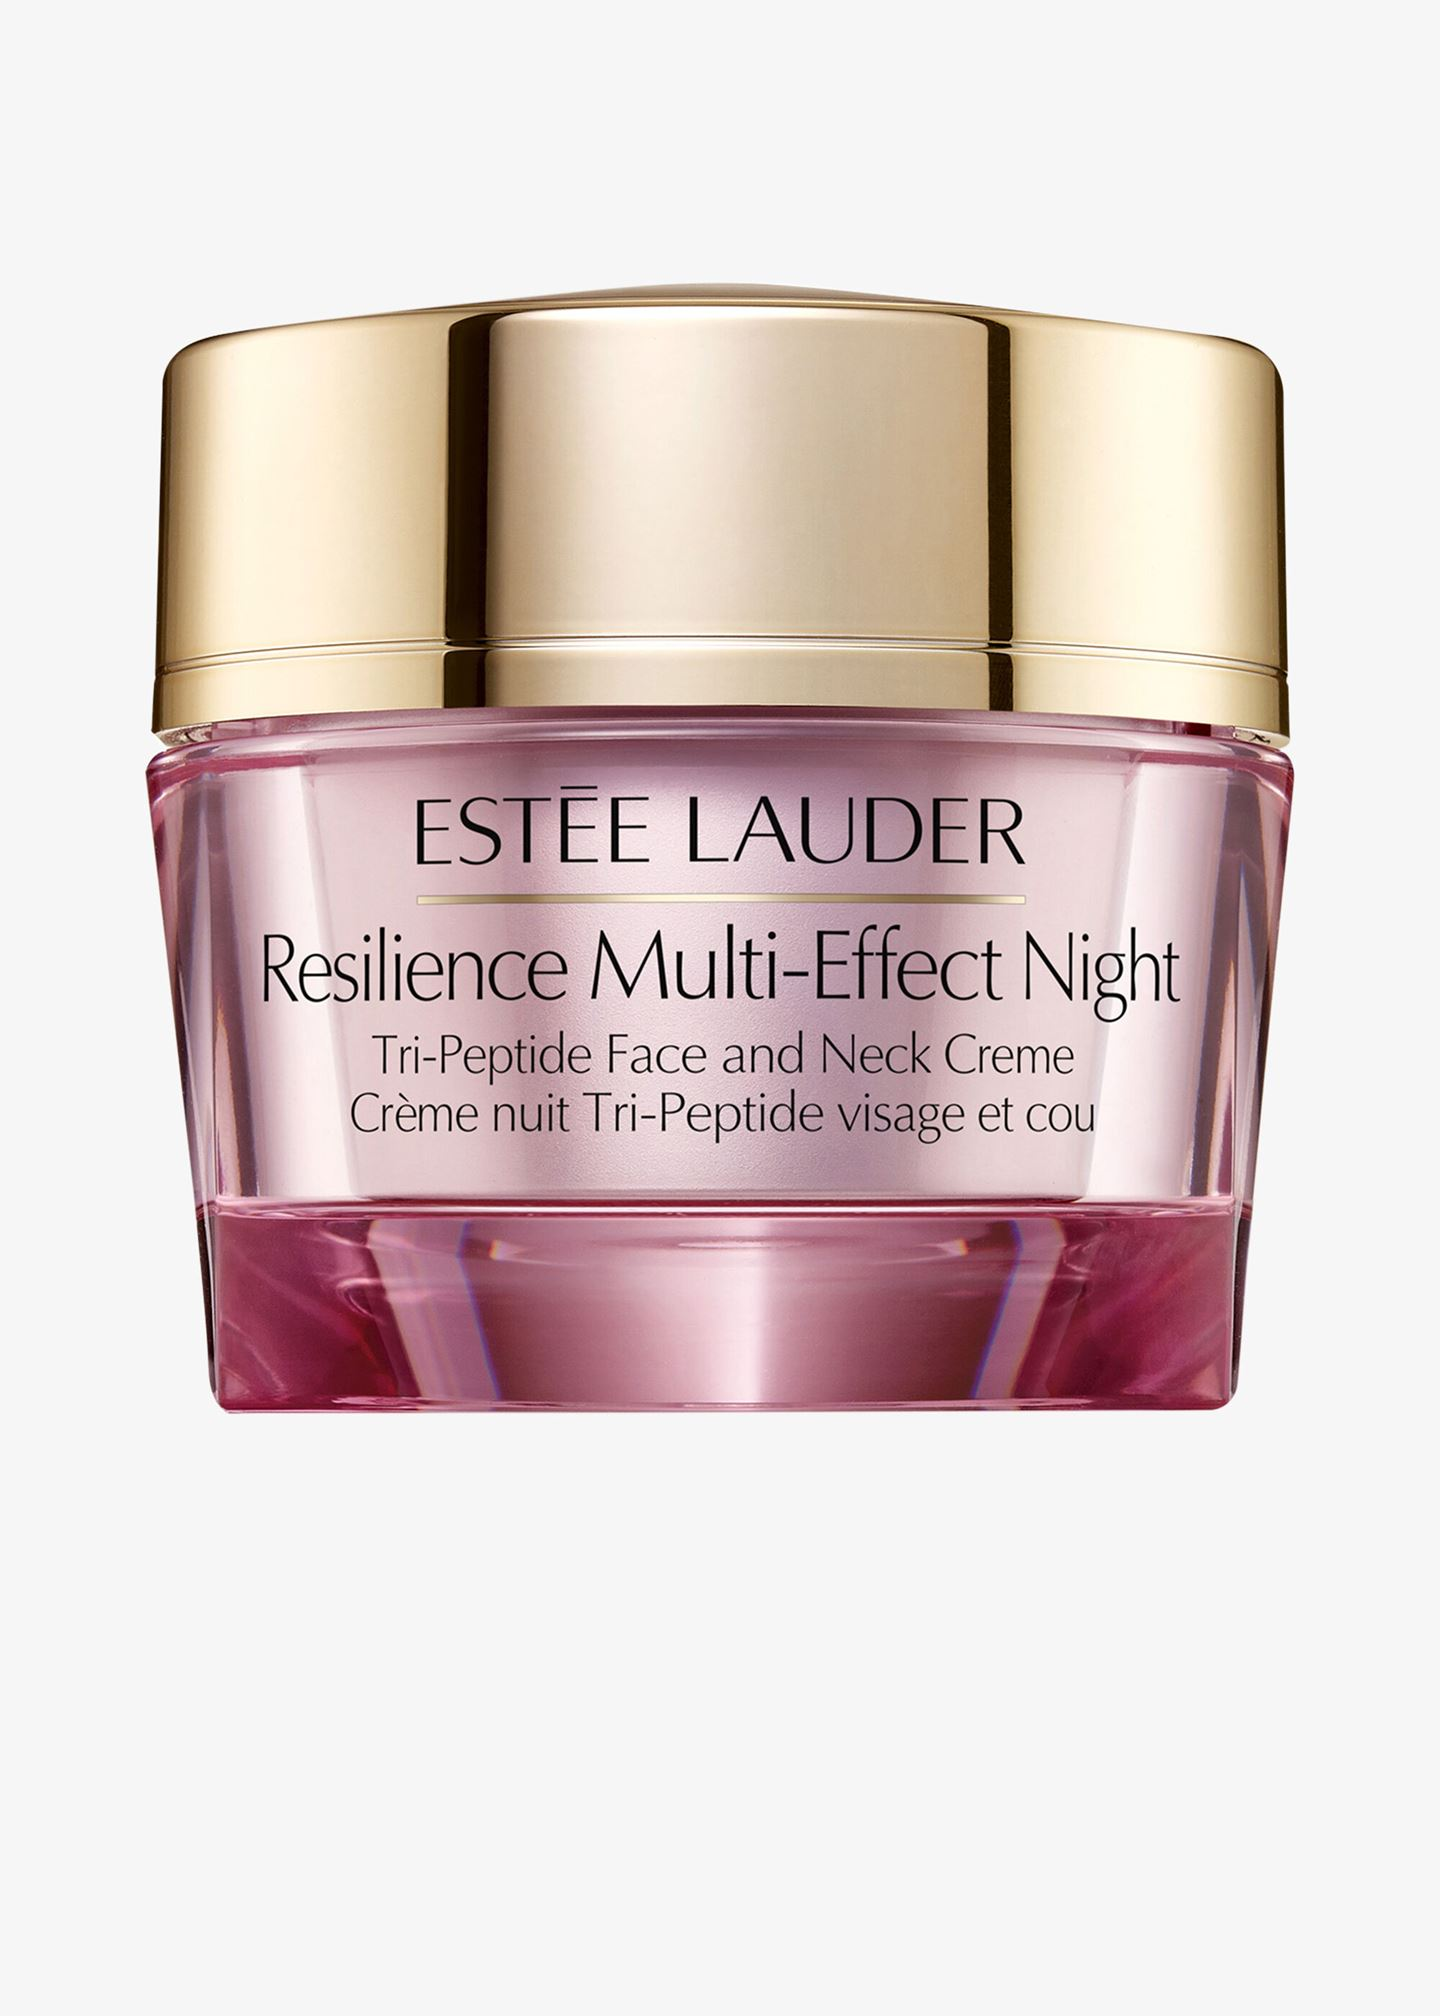 Nachtpflege «Resilience Multieffect Night Tri-Peptide Face and Neck Creme»